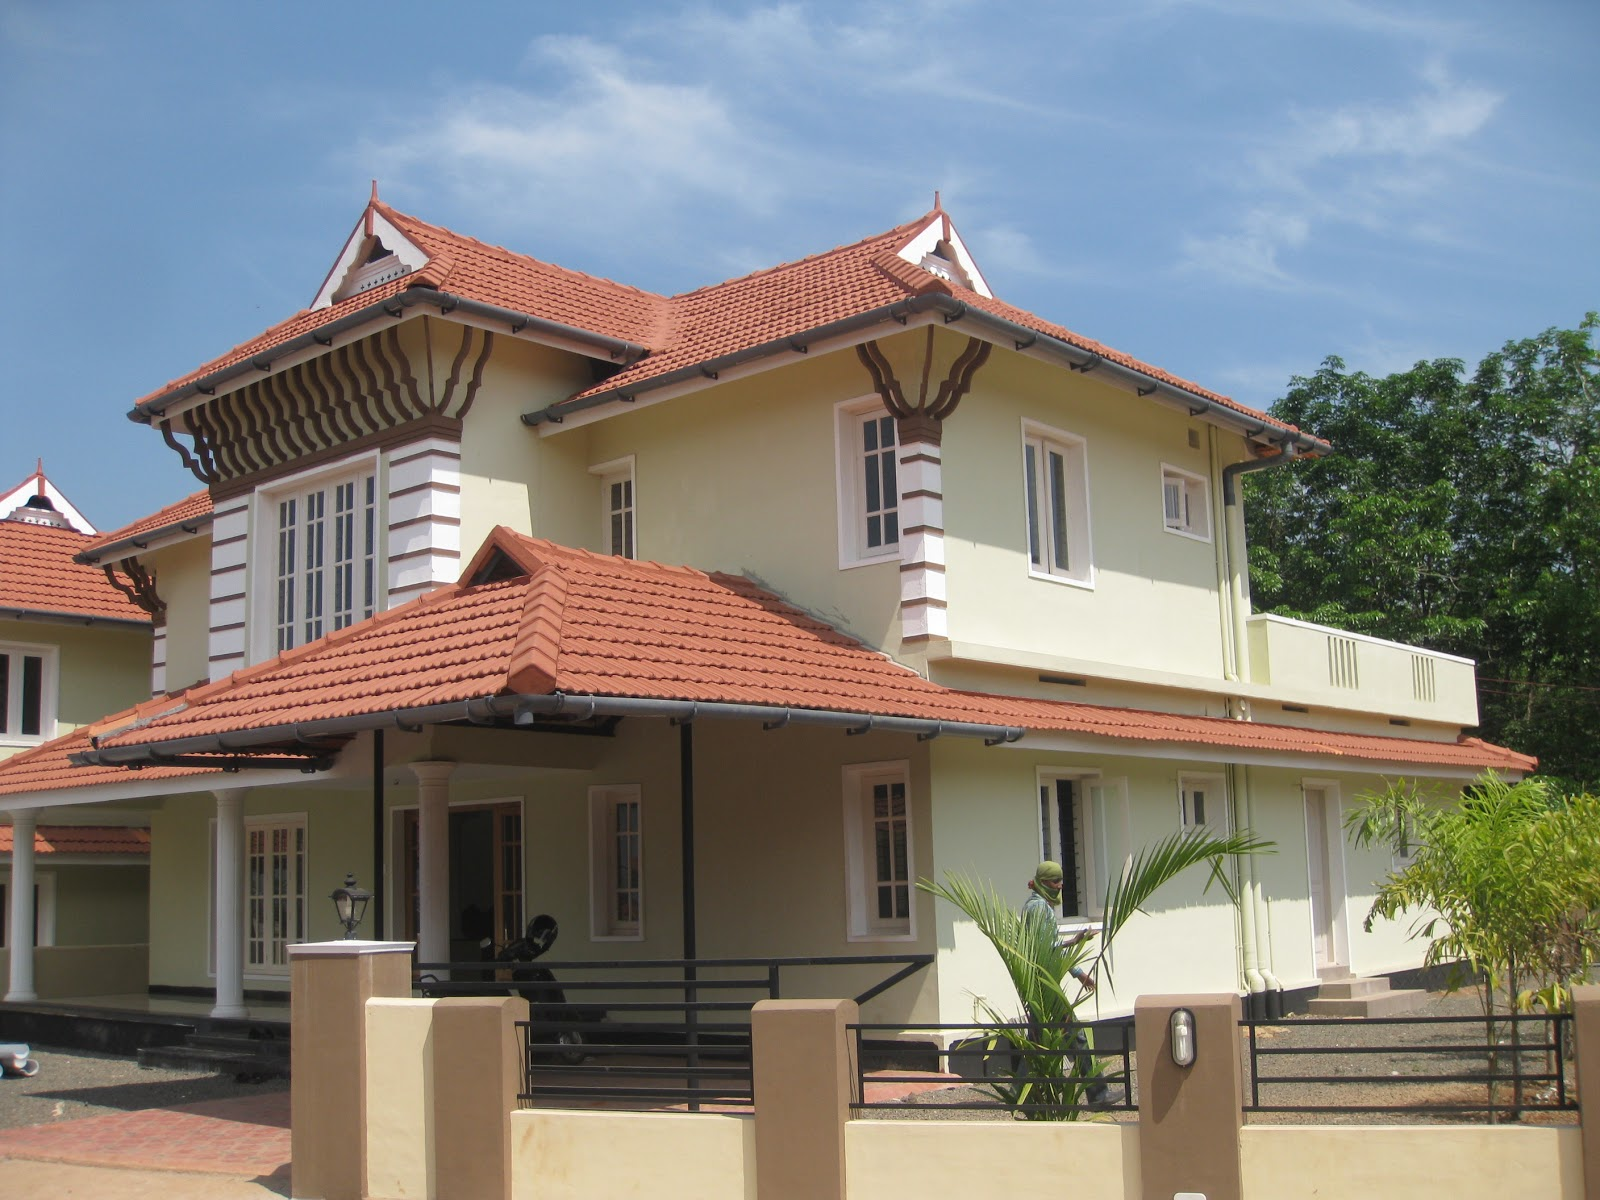 Roof Design Ideas: KeralaArchitect.com: Kerala Roof Design